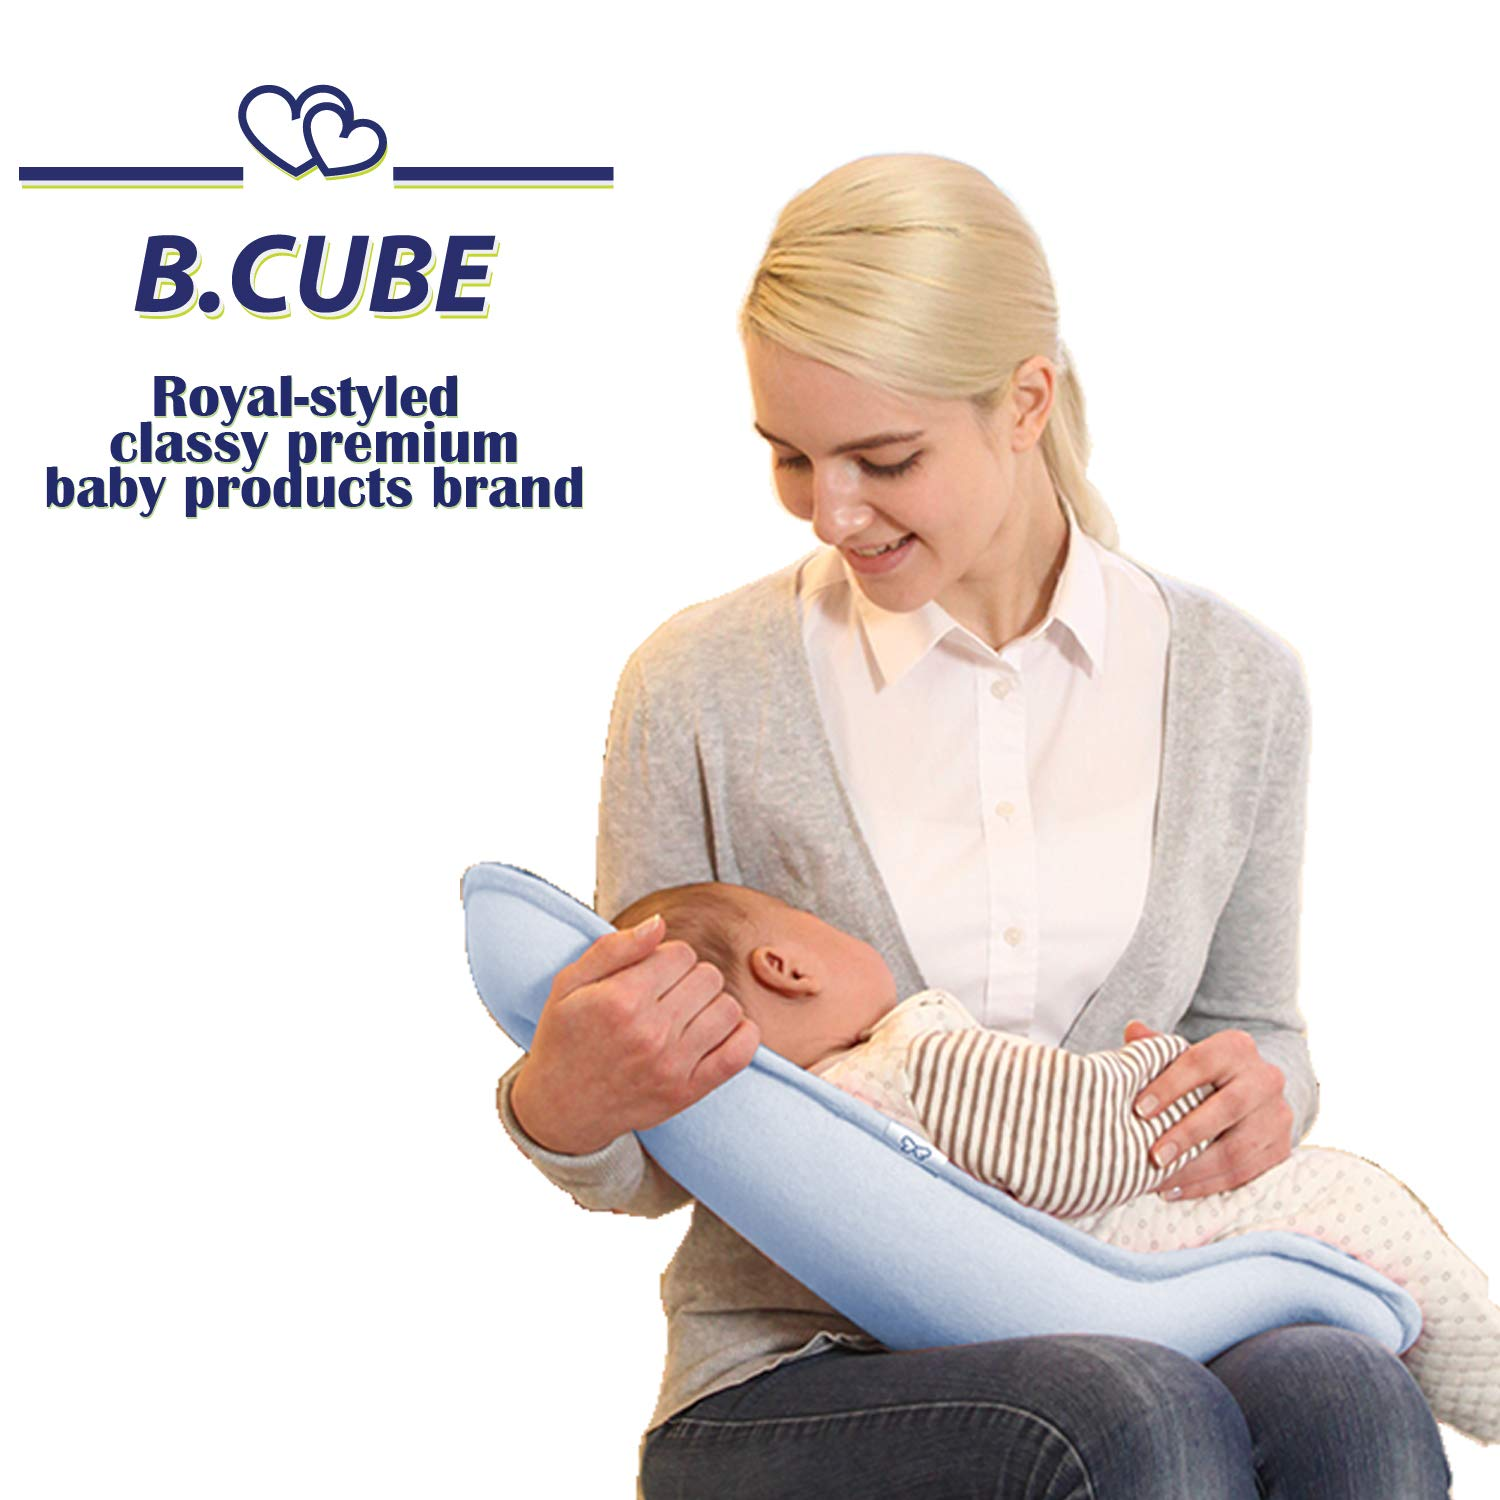 B.CUBE 3D Air Mesh Vent Feeding Seat Nursing Pillow Breast & Bottle Feeding Newborn Baby Infant Cuddle Care Seat 3D Air Vent System Ergonomic Design The Best Present for Baby Shower(Blue) by B.CUBE